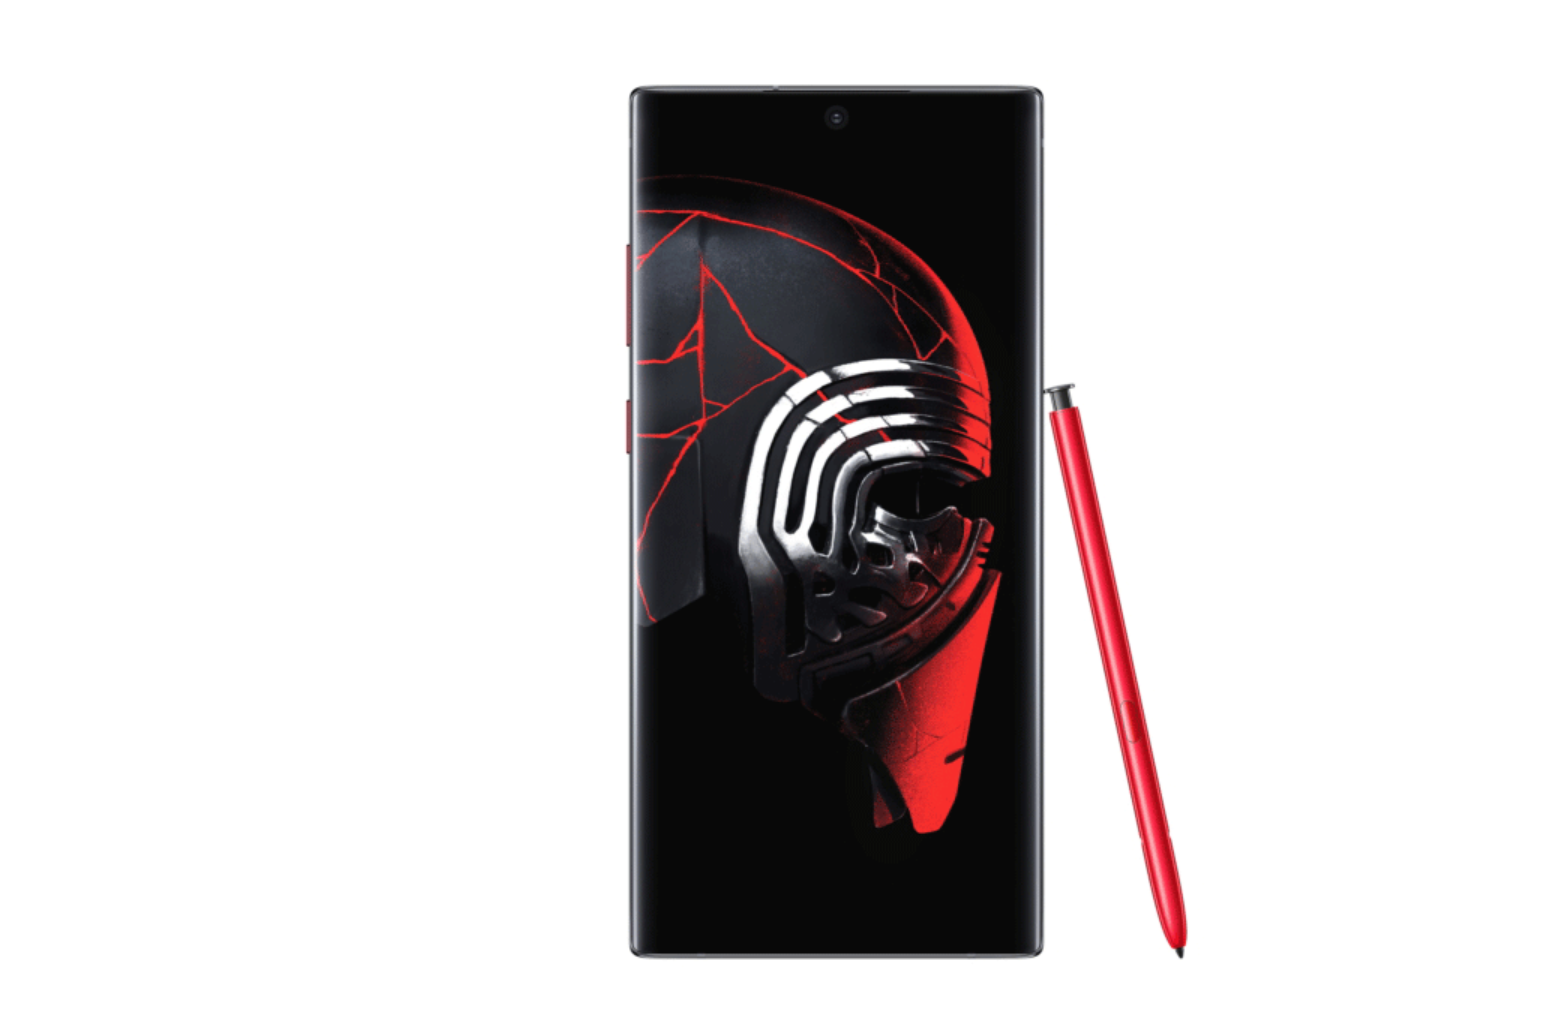 Samsung Galaxy Note 10+ Star Wars special edition launched - Gadgets Now